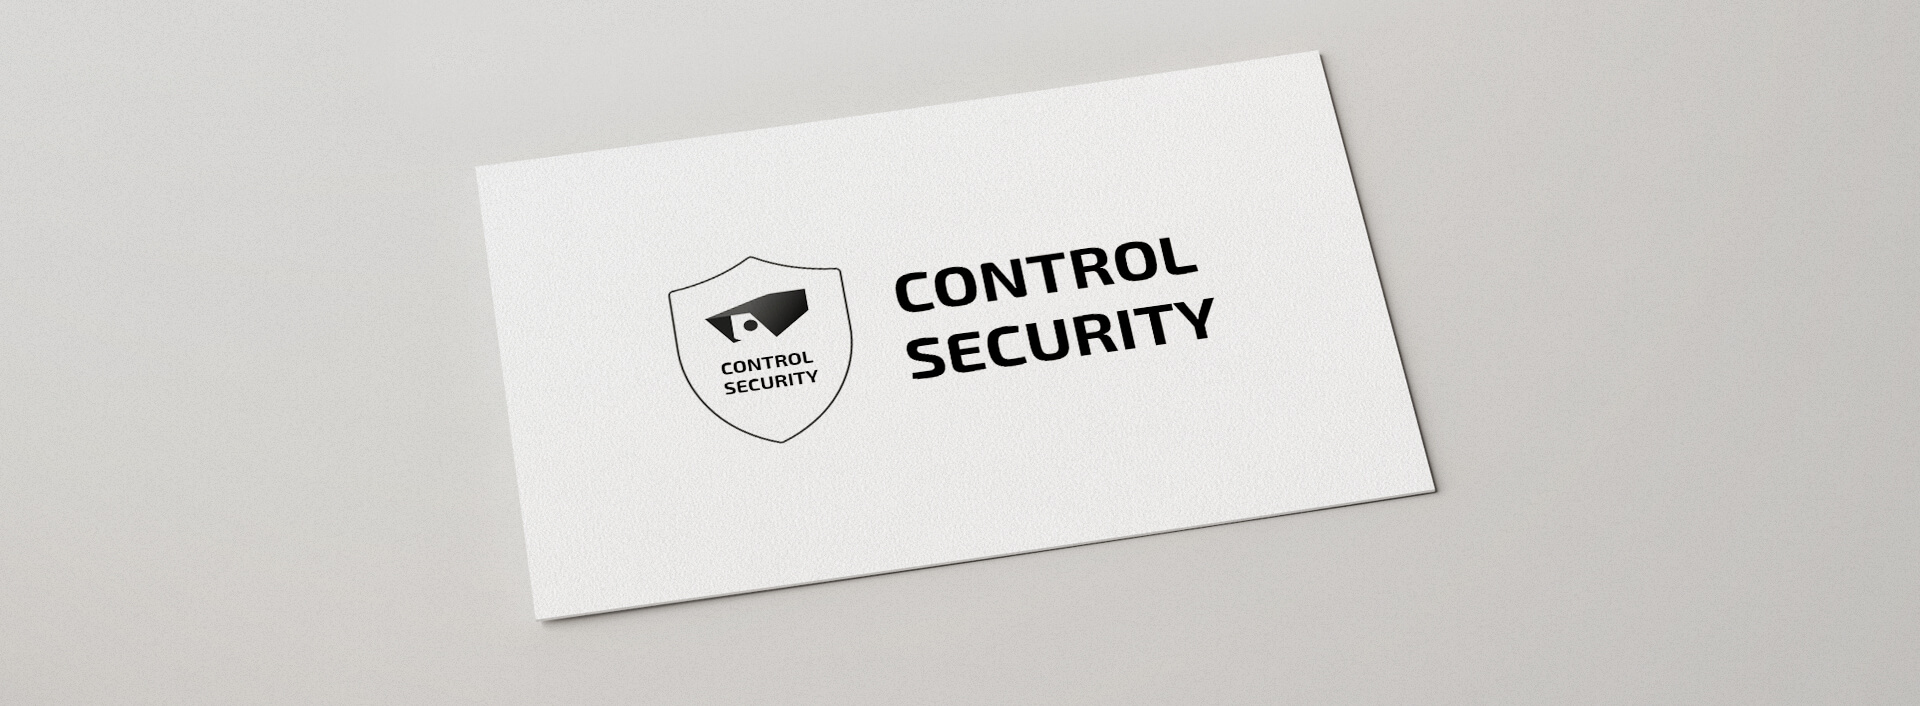 ControlSecurity - Логотип